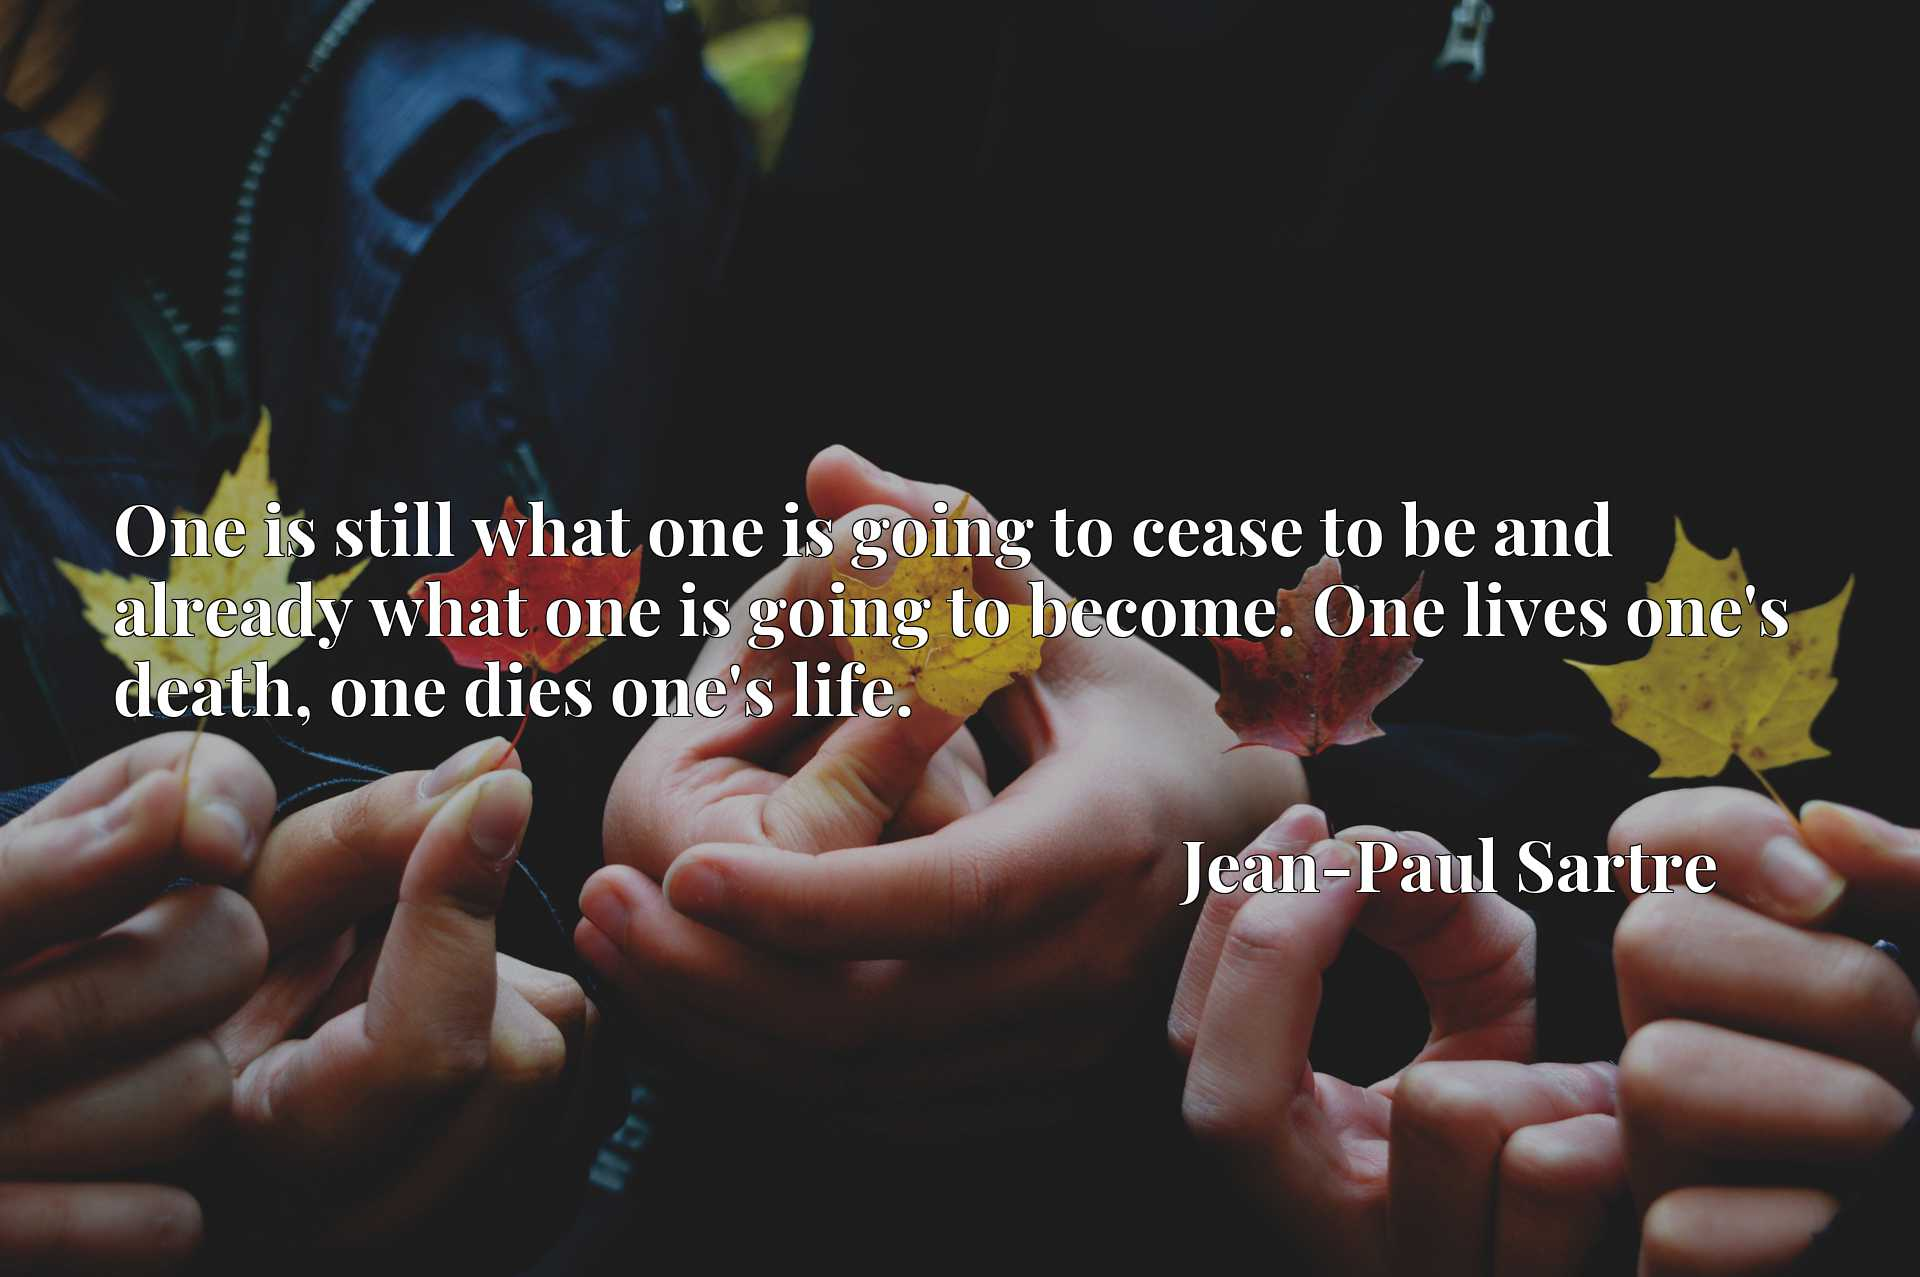 One is still what one is going to cease to be and already what one is going to become. One lives one's death, one dies one's life.